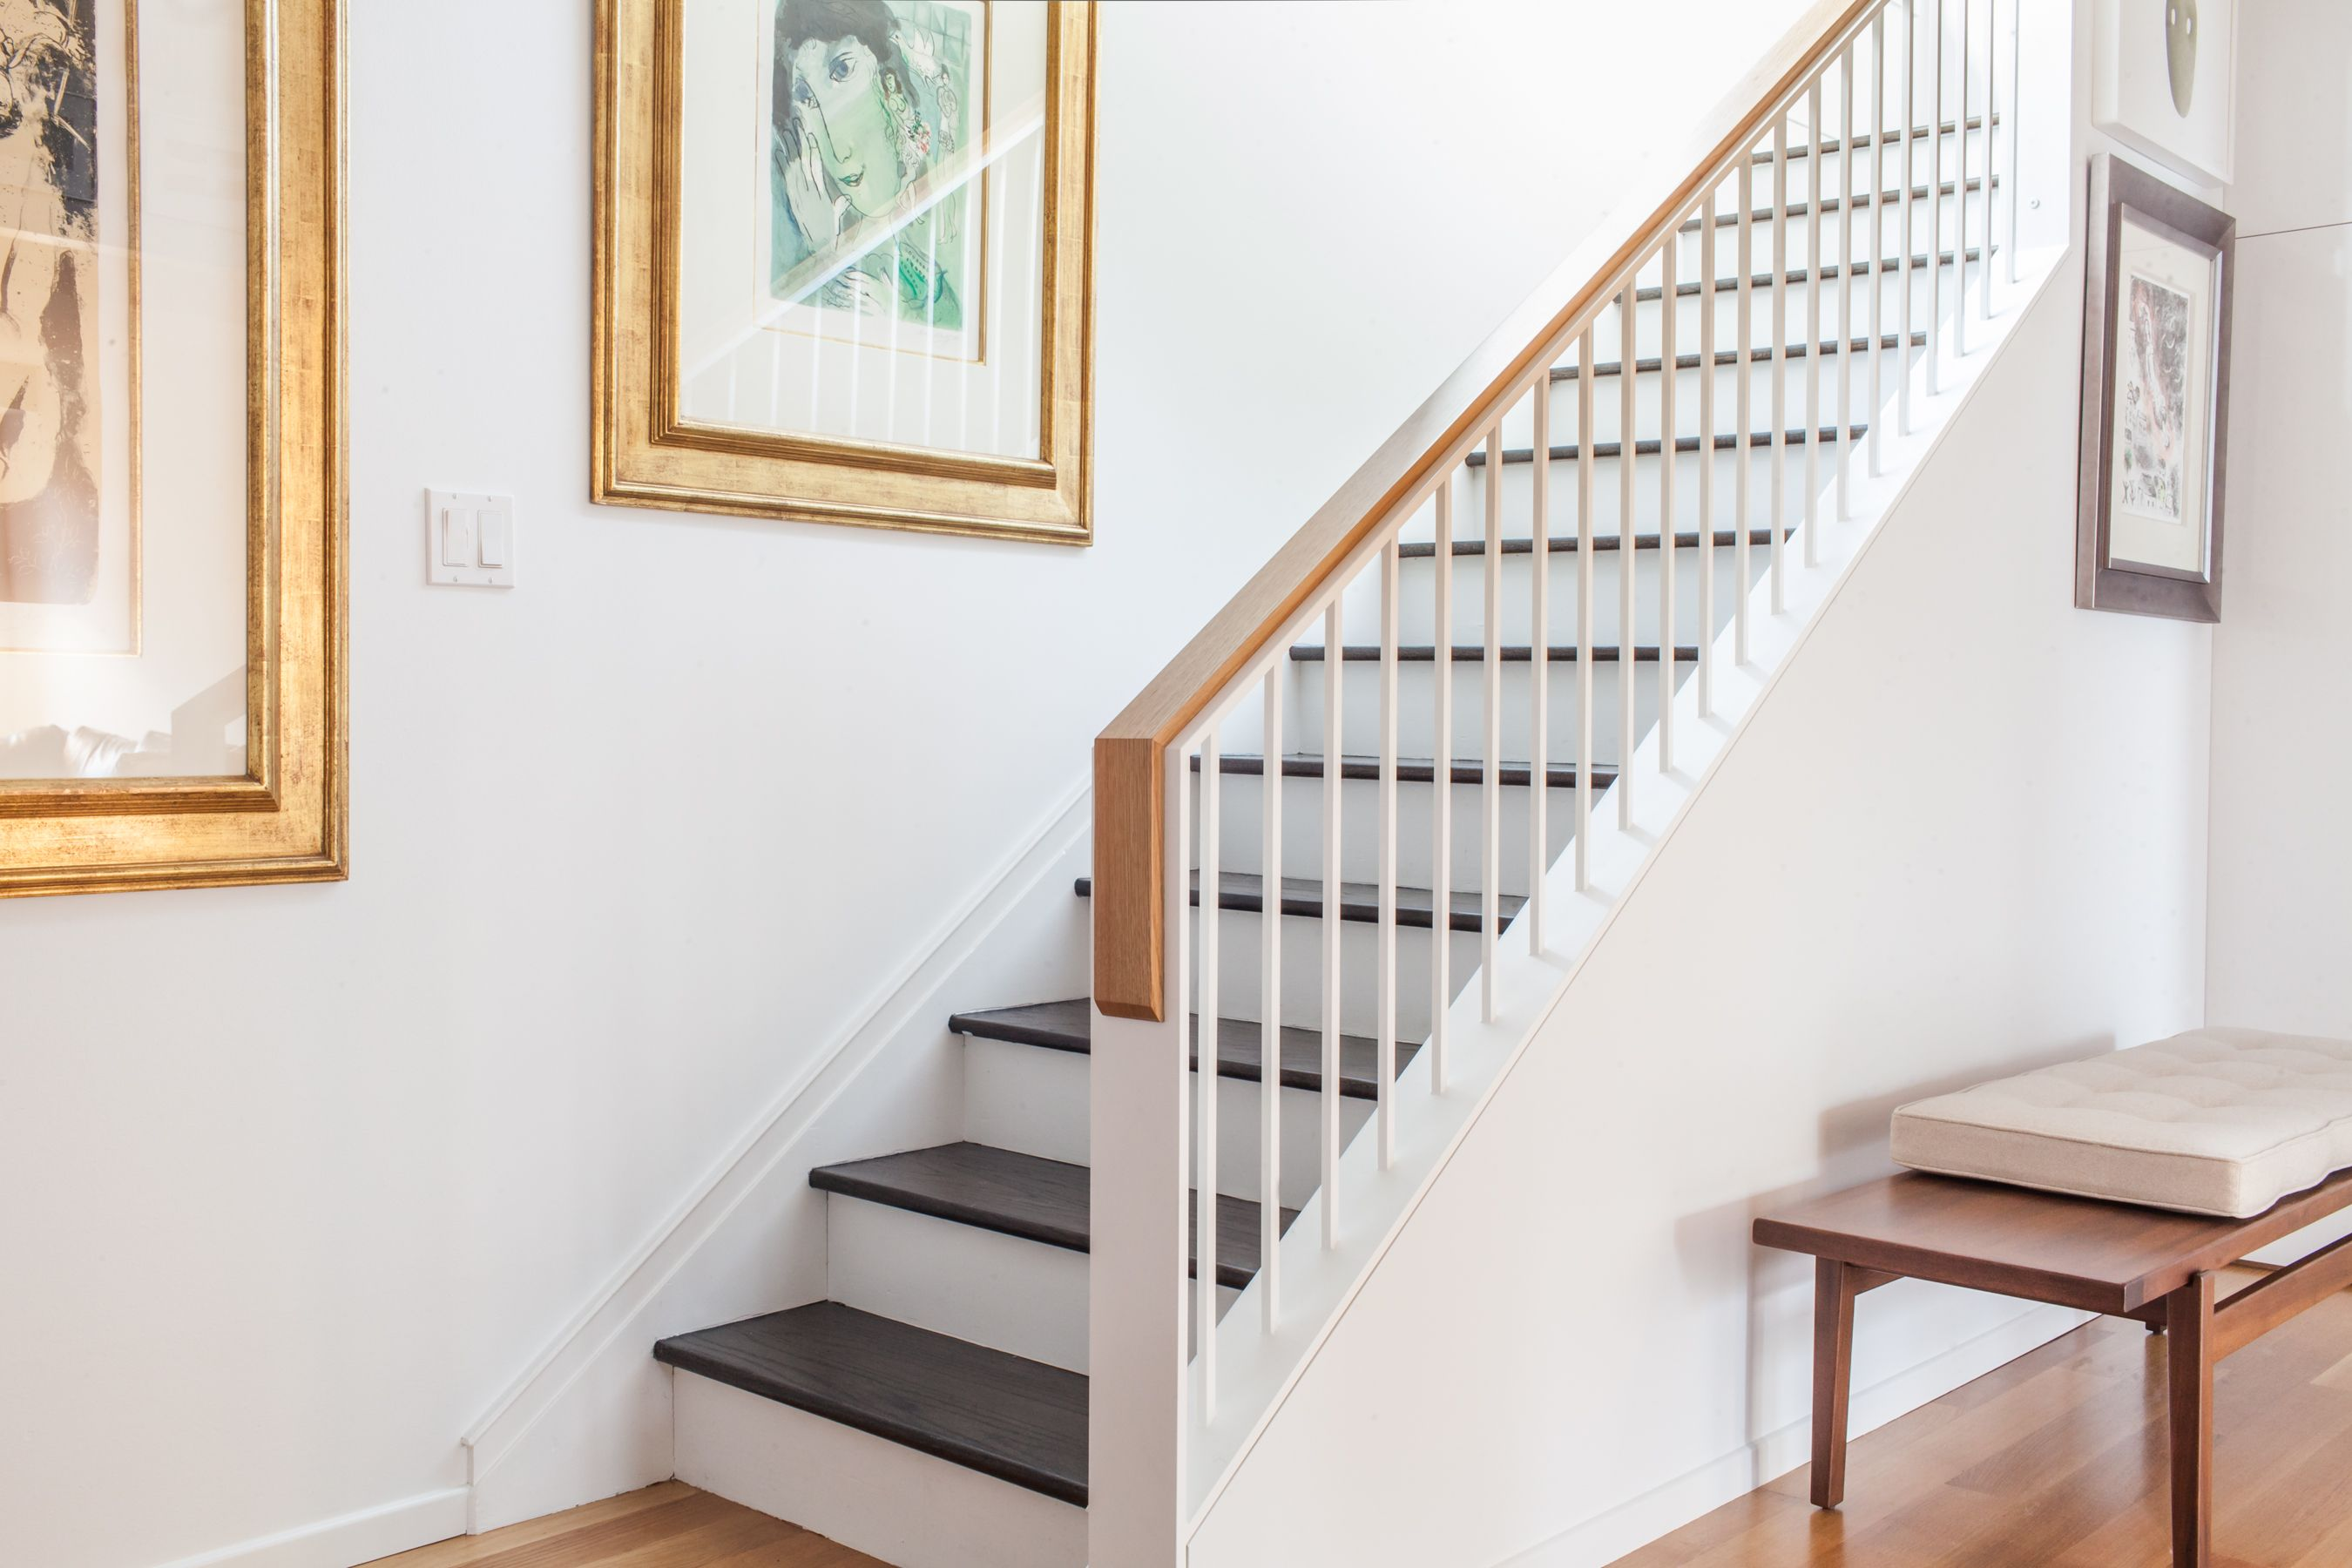 pin by yessyca nix on stairs pinterest stairs stair railing and rh pinterest com